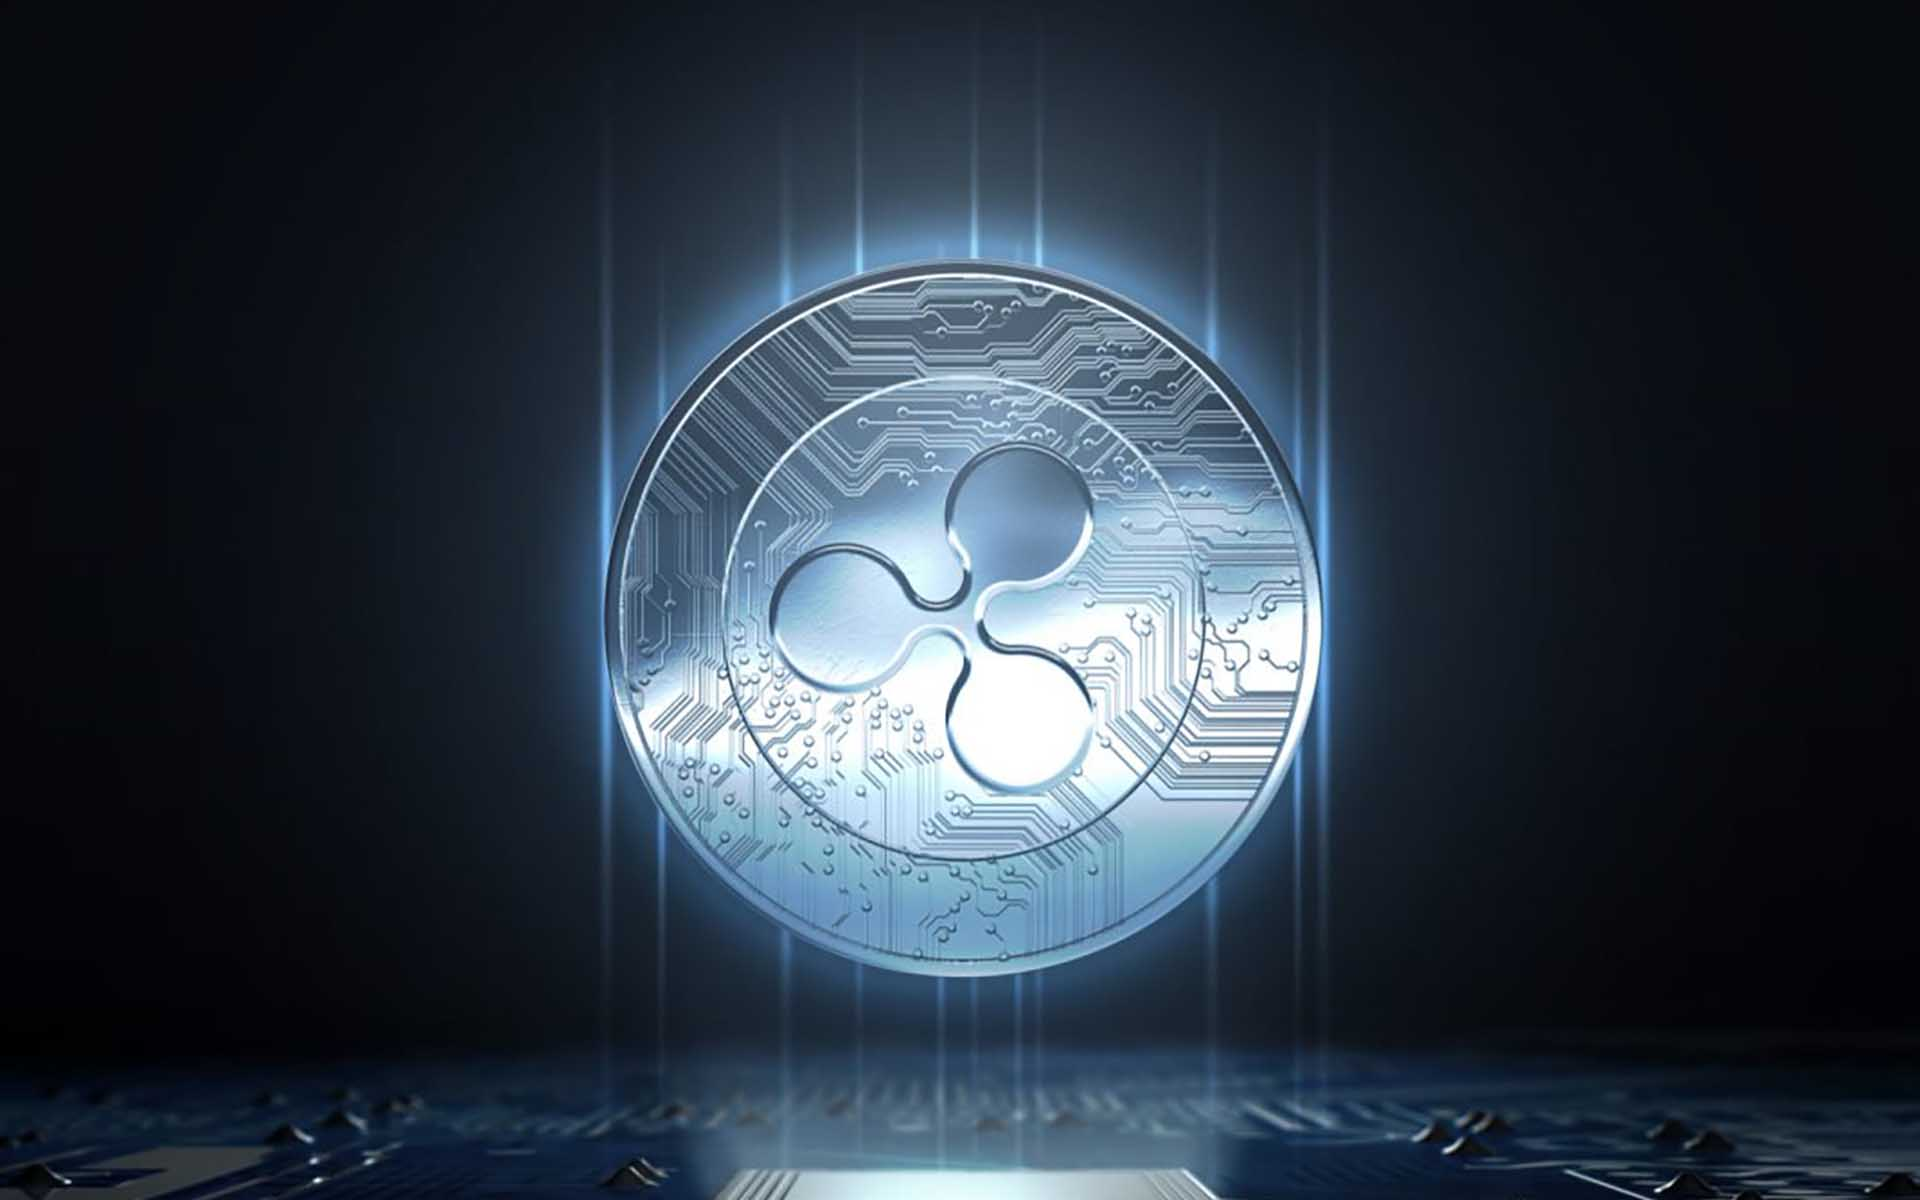 Crypto Experts Weigh in, Predict Big Gains for Ripple in 2018